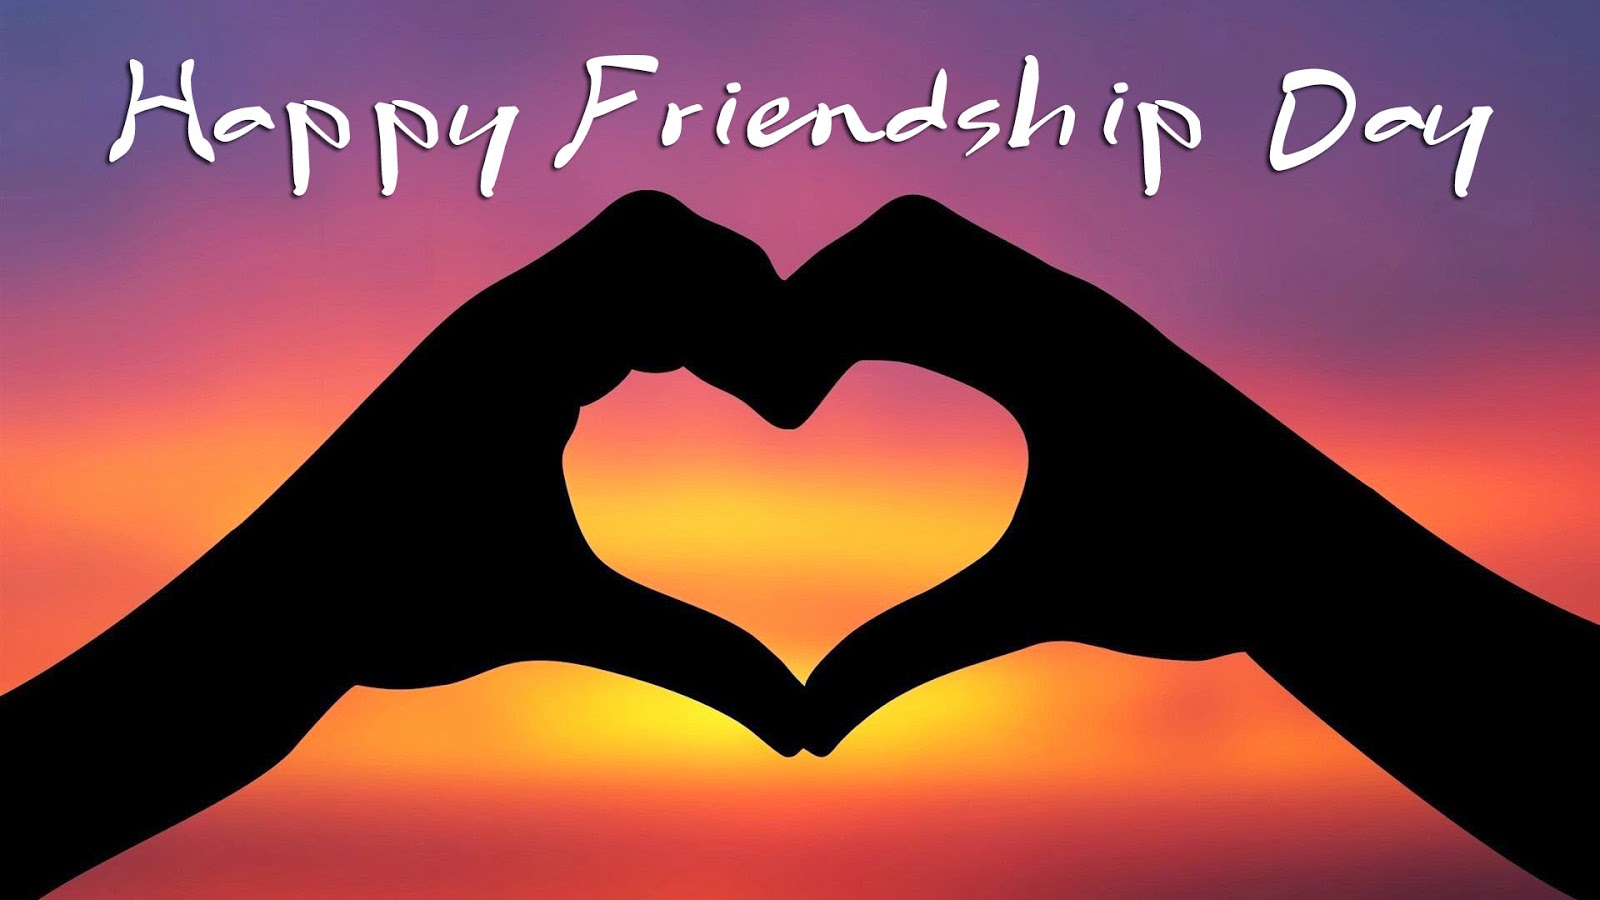 Quotes And Images About Friendship Happy Friendship Day Quotes Sayings Messages Images 2017 *best